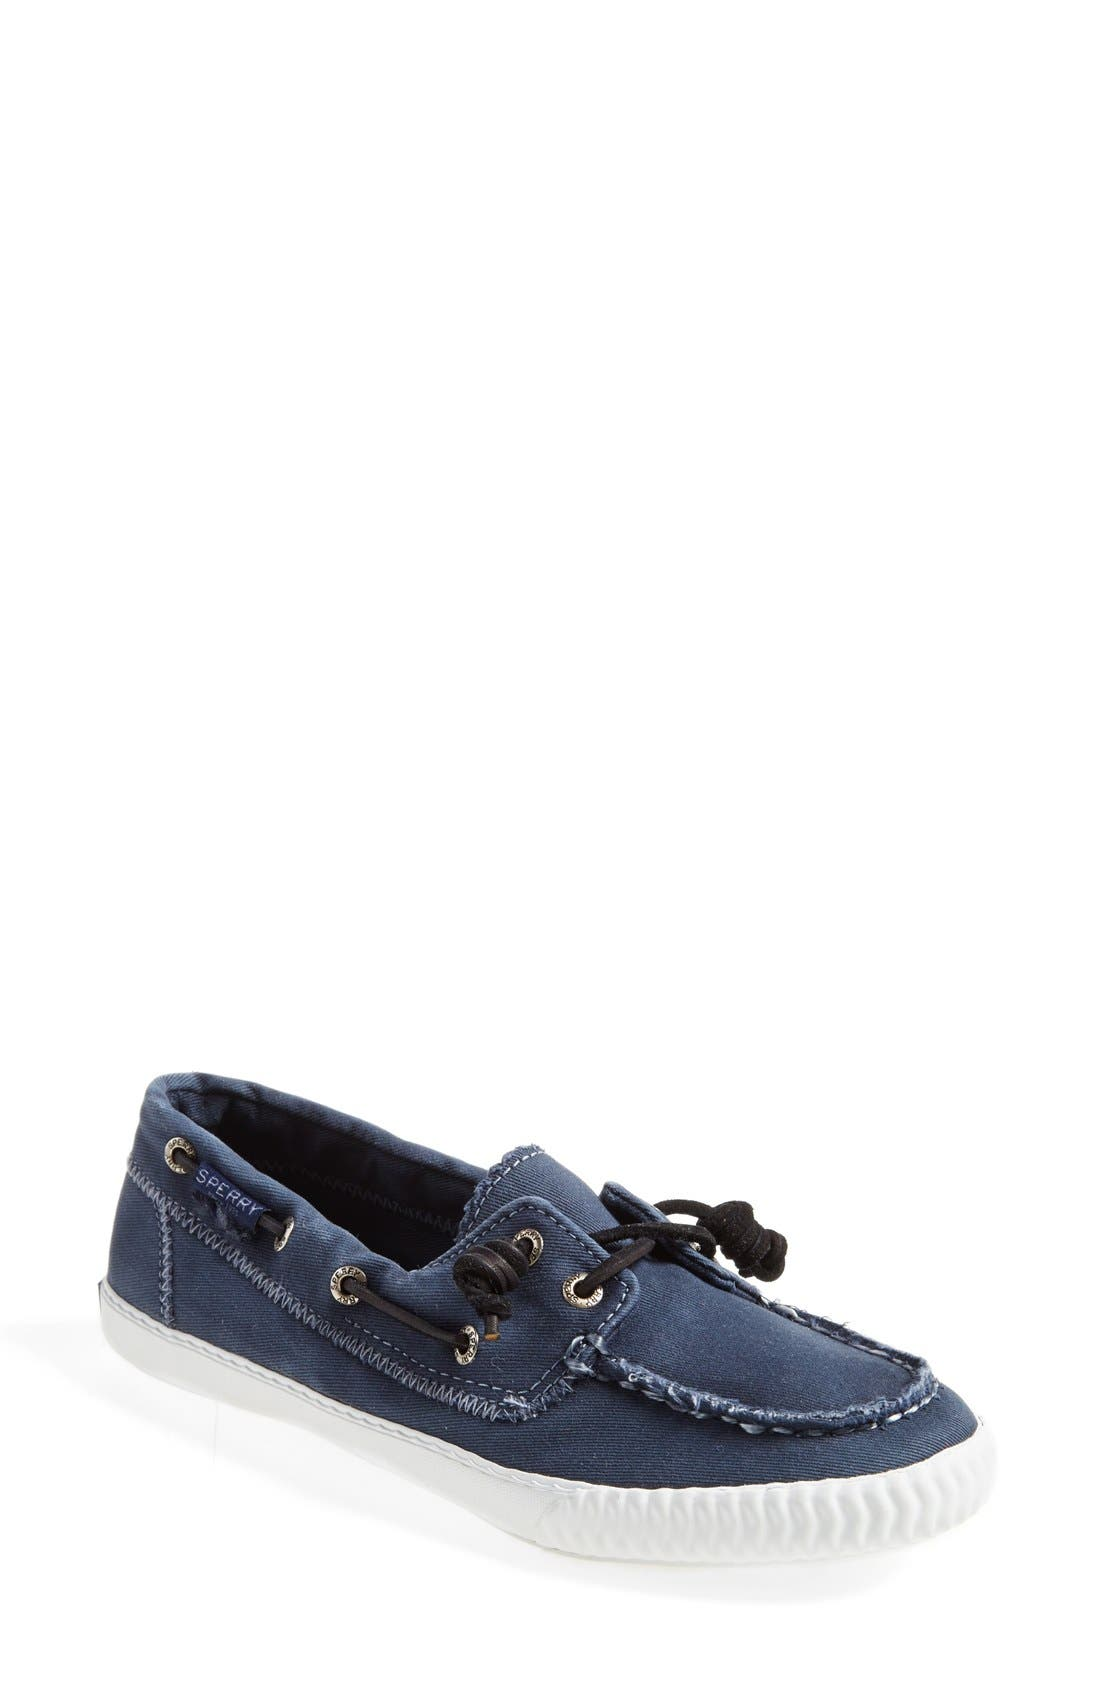 Paul Sperry 'Sayel Away' Sneaker,                             Main thumbnail 1, color,                             Navy